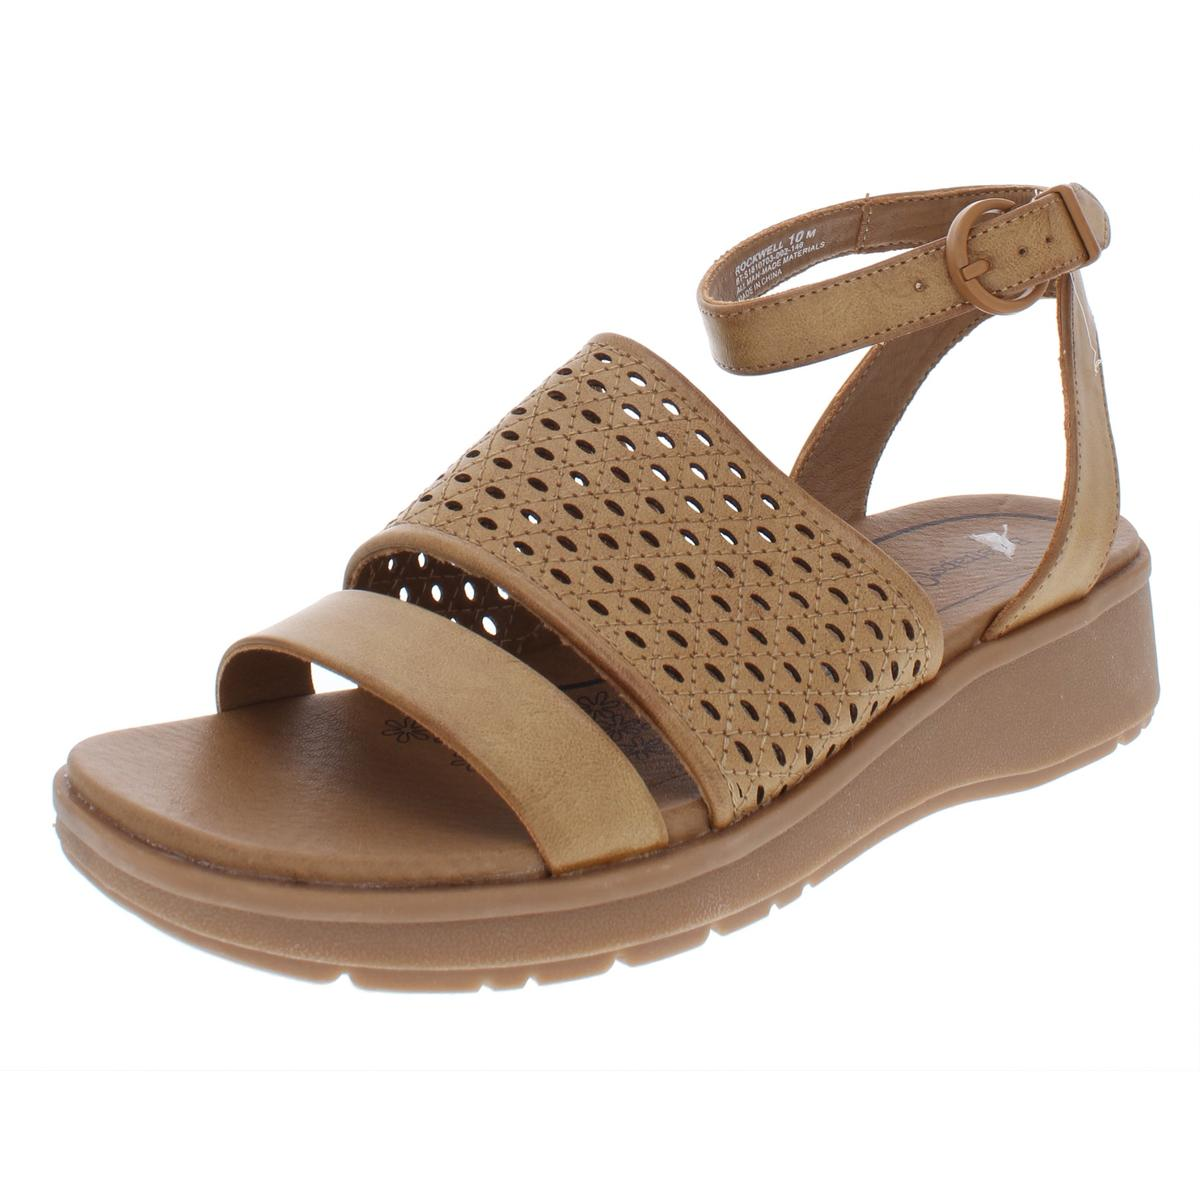 0e1315cdfb7c Details about Baretraps Womens Rockwell Faux Leather Perforated Wedge  Sandals Shoes BHFO 6042